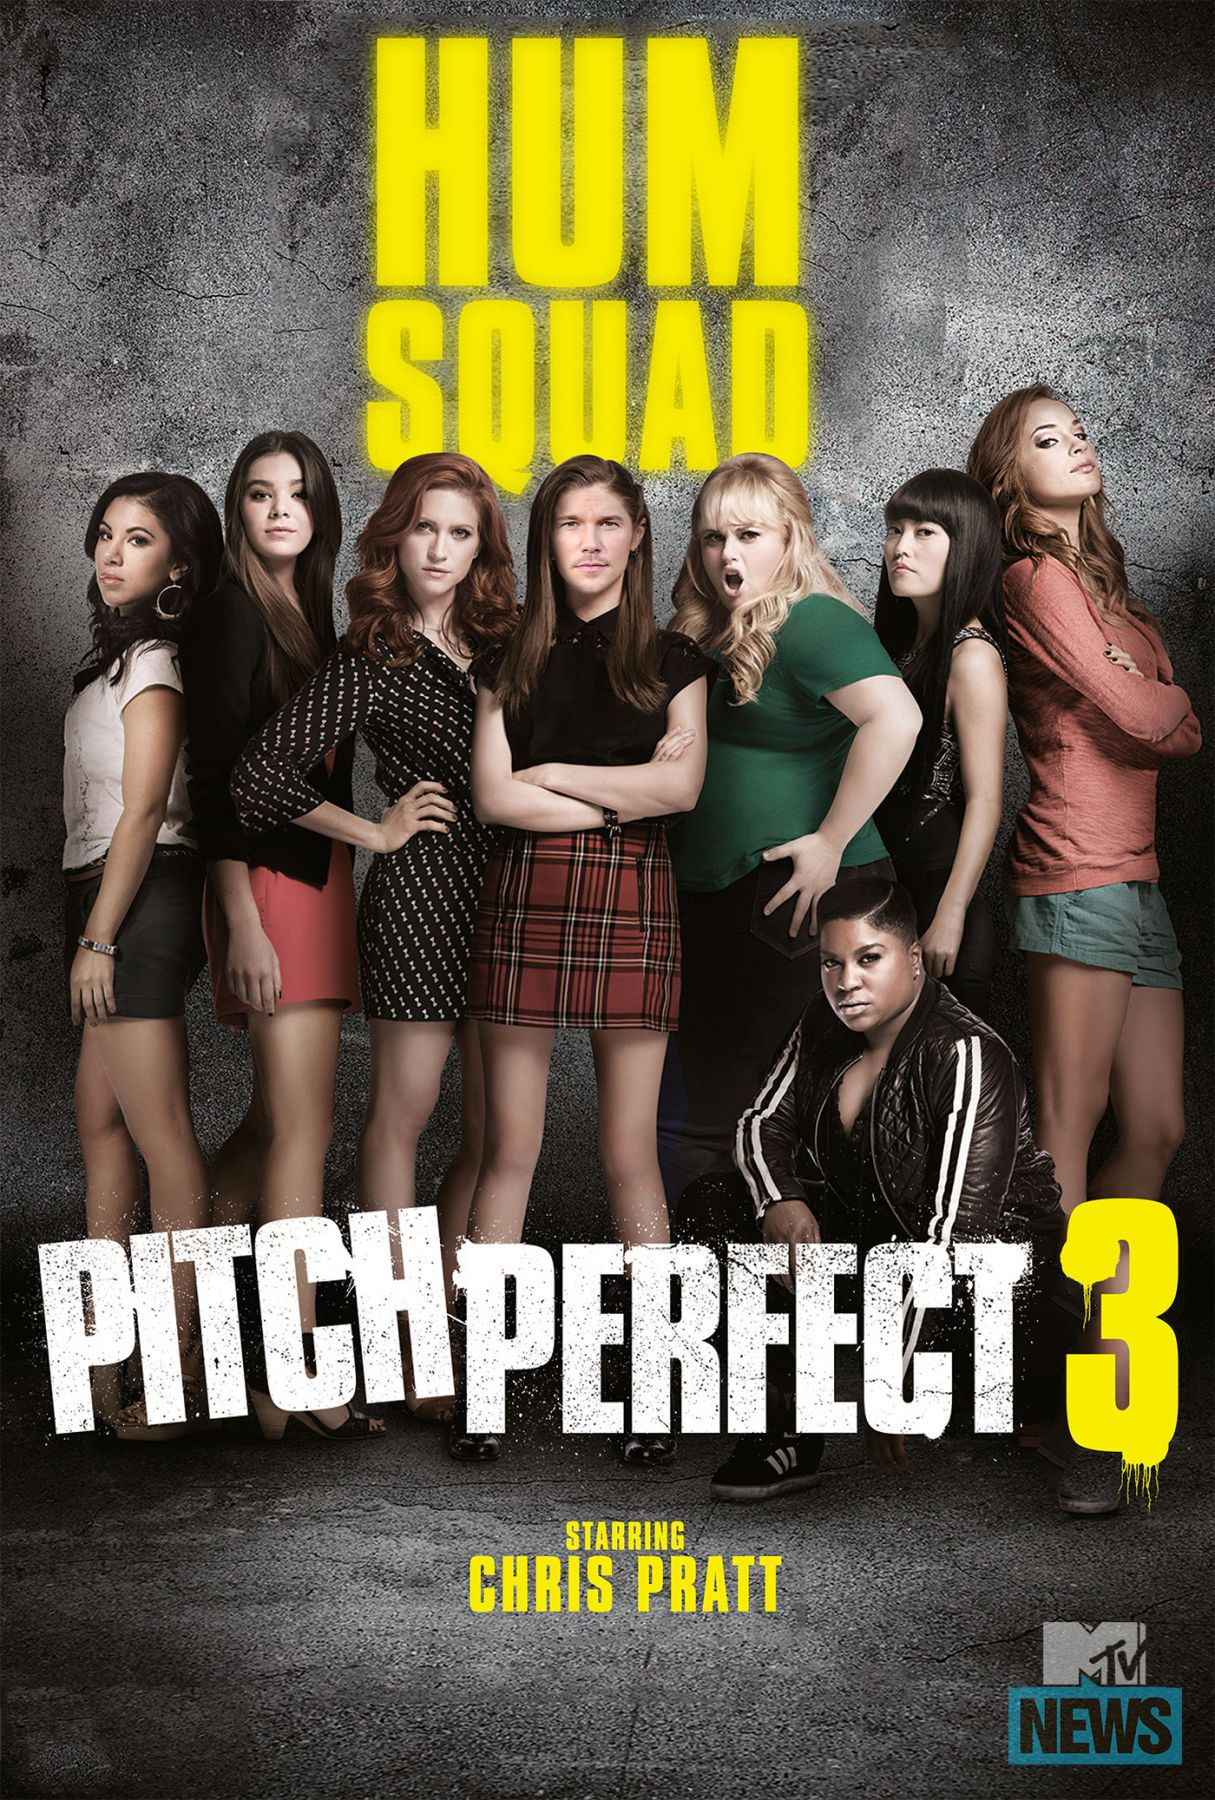 What If Chris Pratt Was The Star Of Hunger Games Pitch Perfect And More Pitch Perfect Pitch Perfect 2 Watch Pitch Perfect